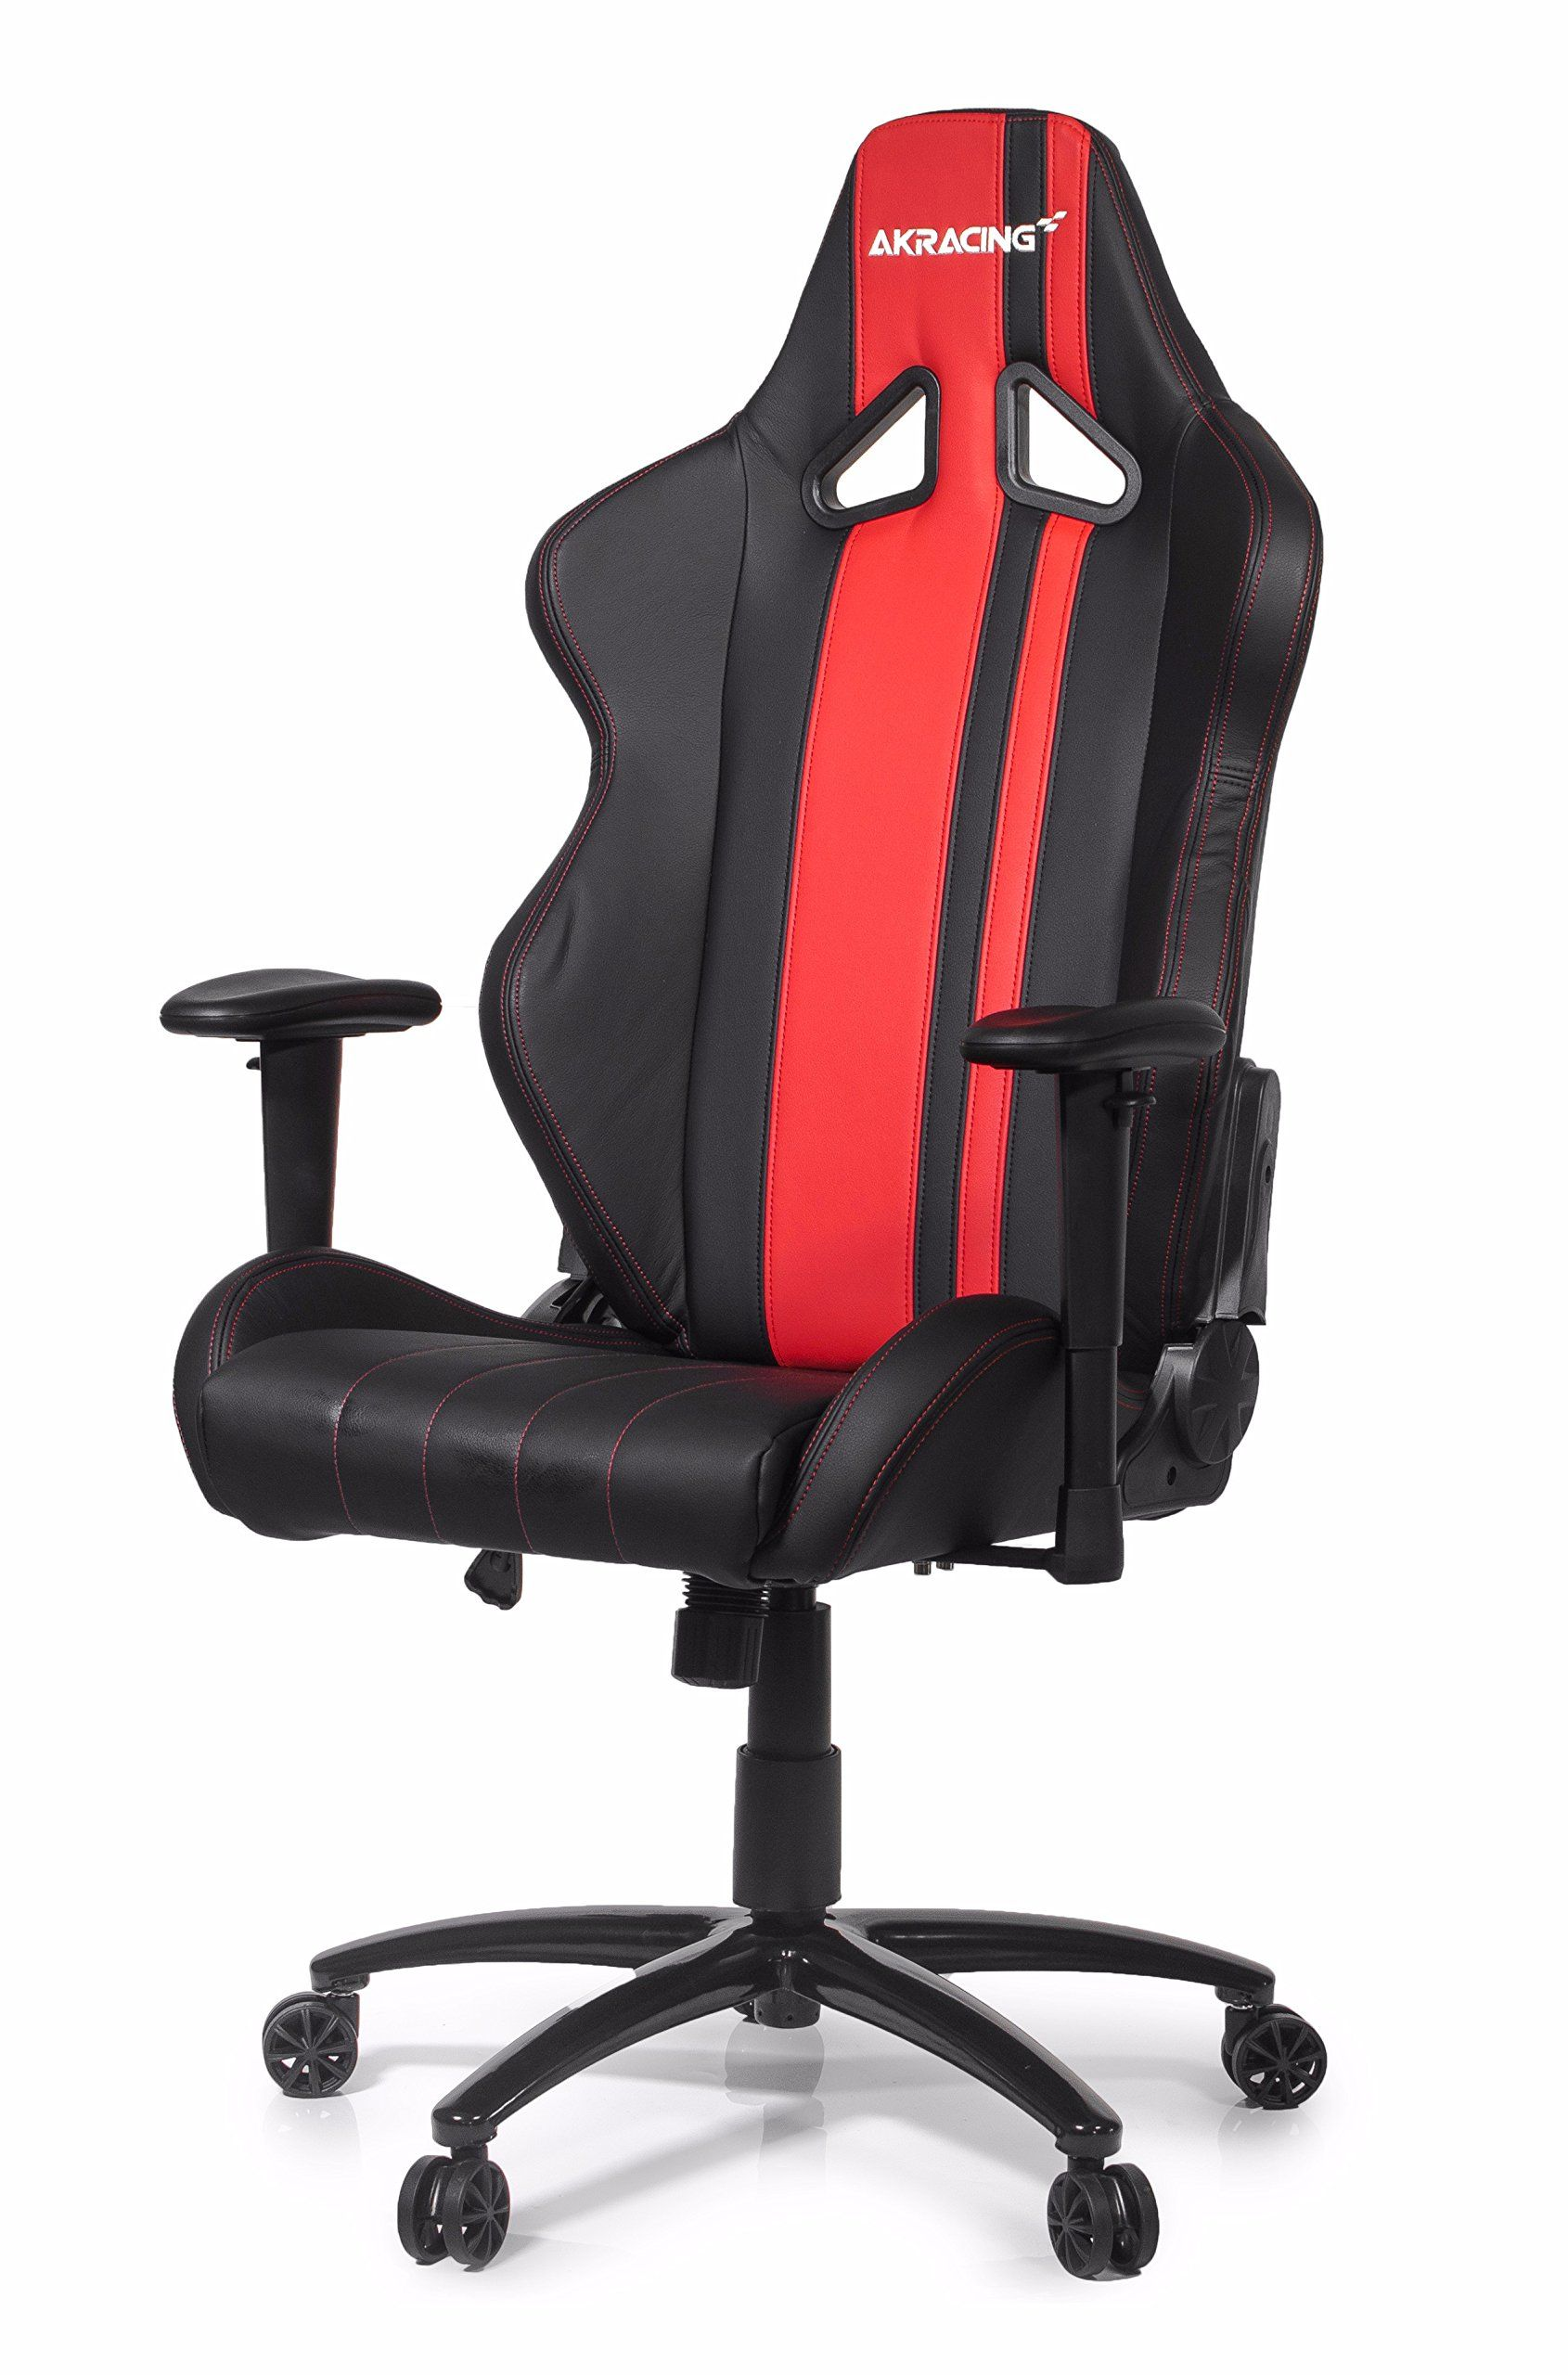 her time chair amazon s ergonomic had forums design sr high expensive put com but ebay ie to ref back gaming dp evga computer qid down was it i keywords